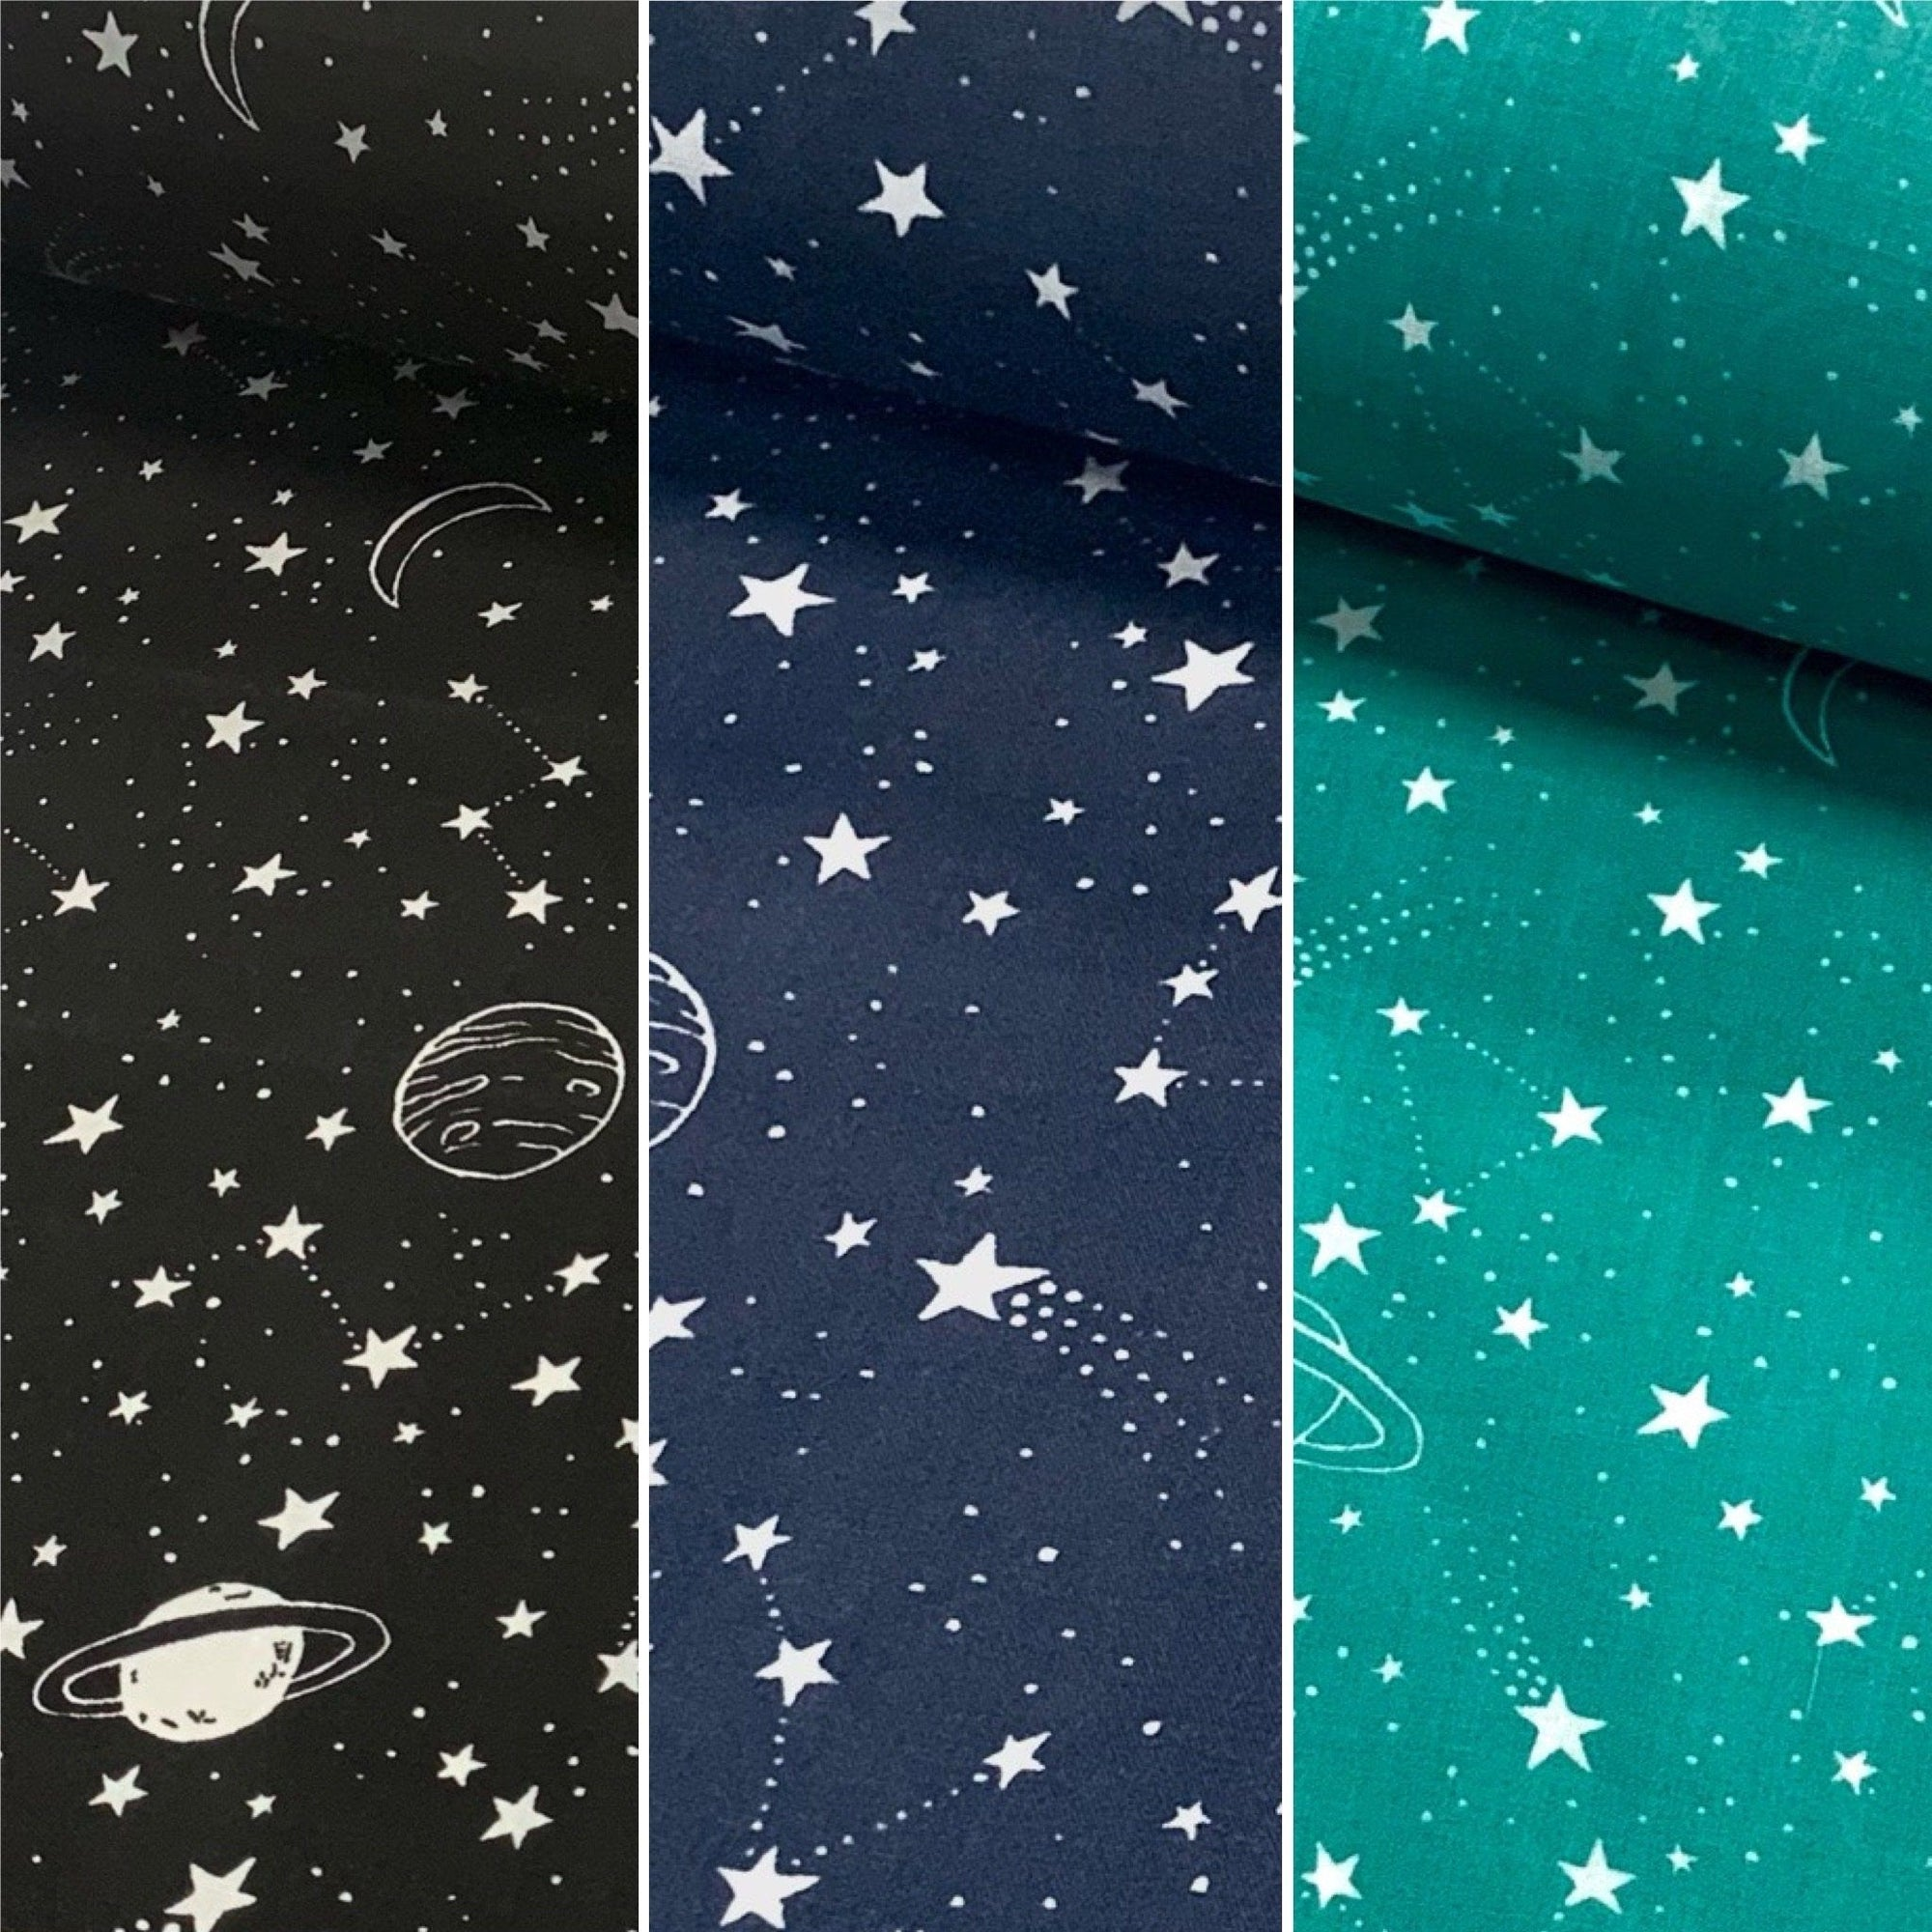 Stars and Planets Polycotton Fabric